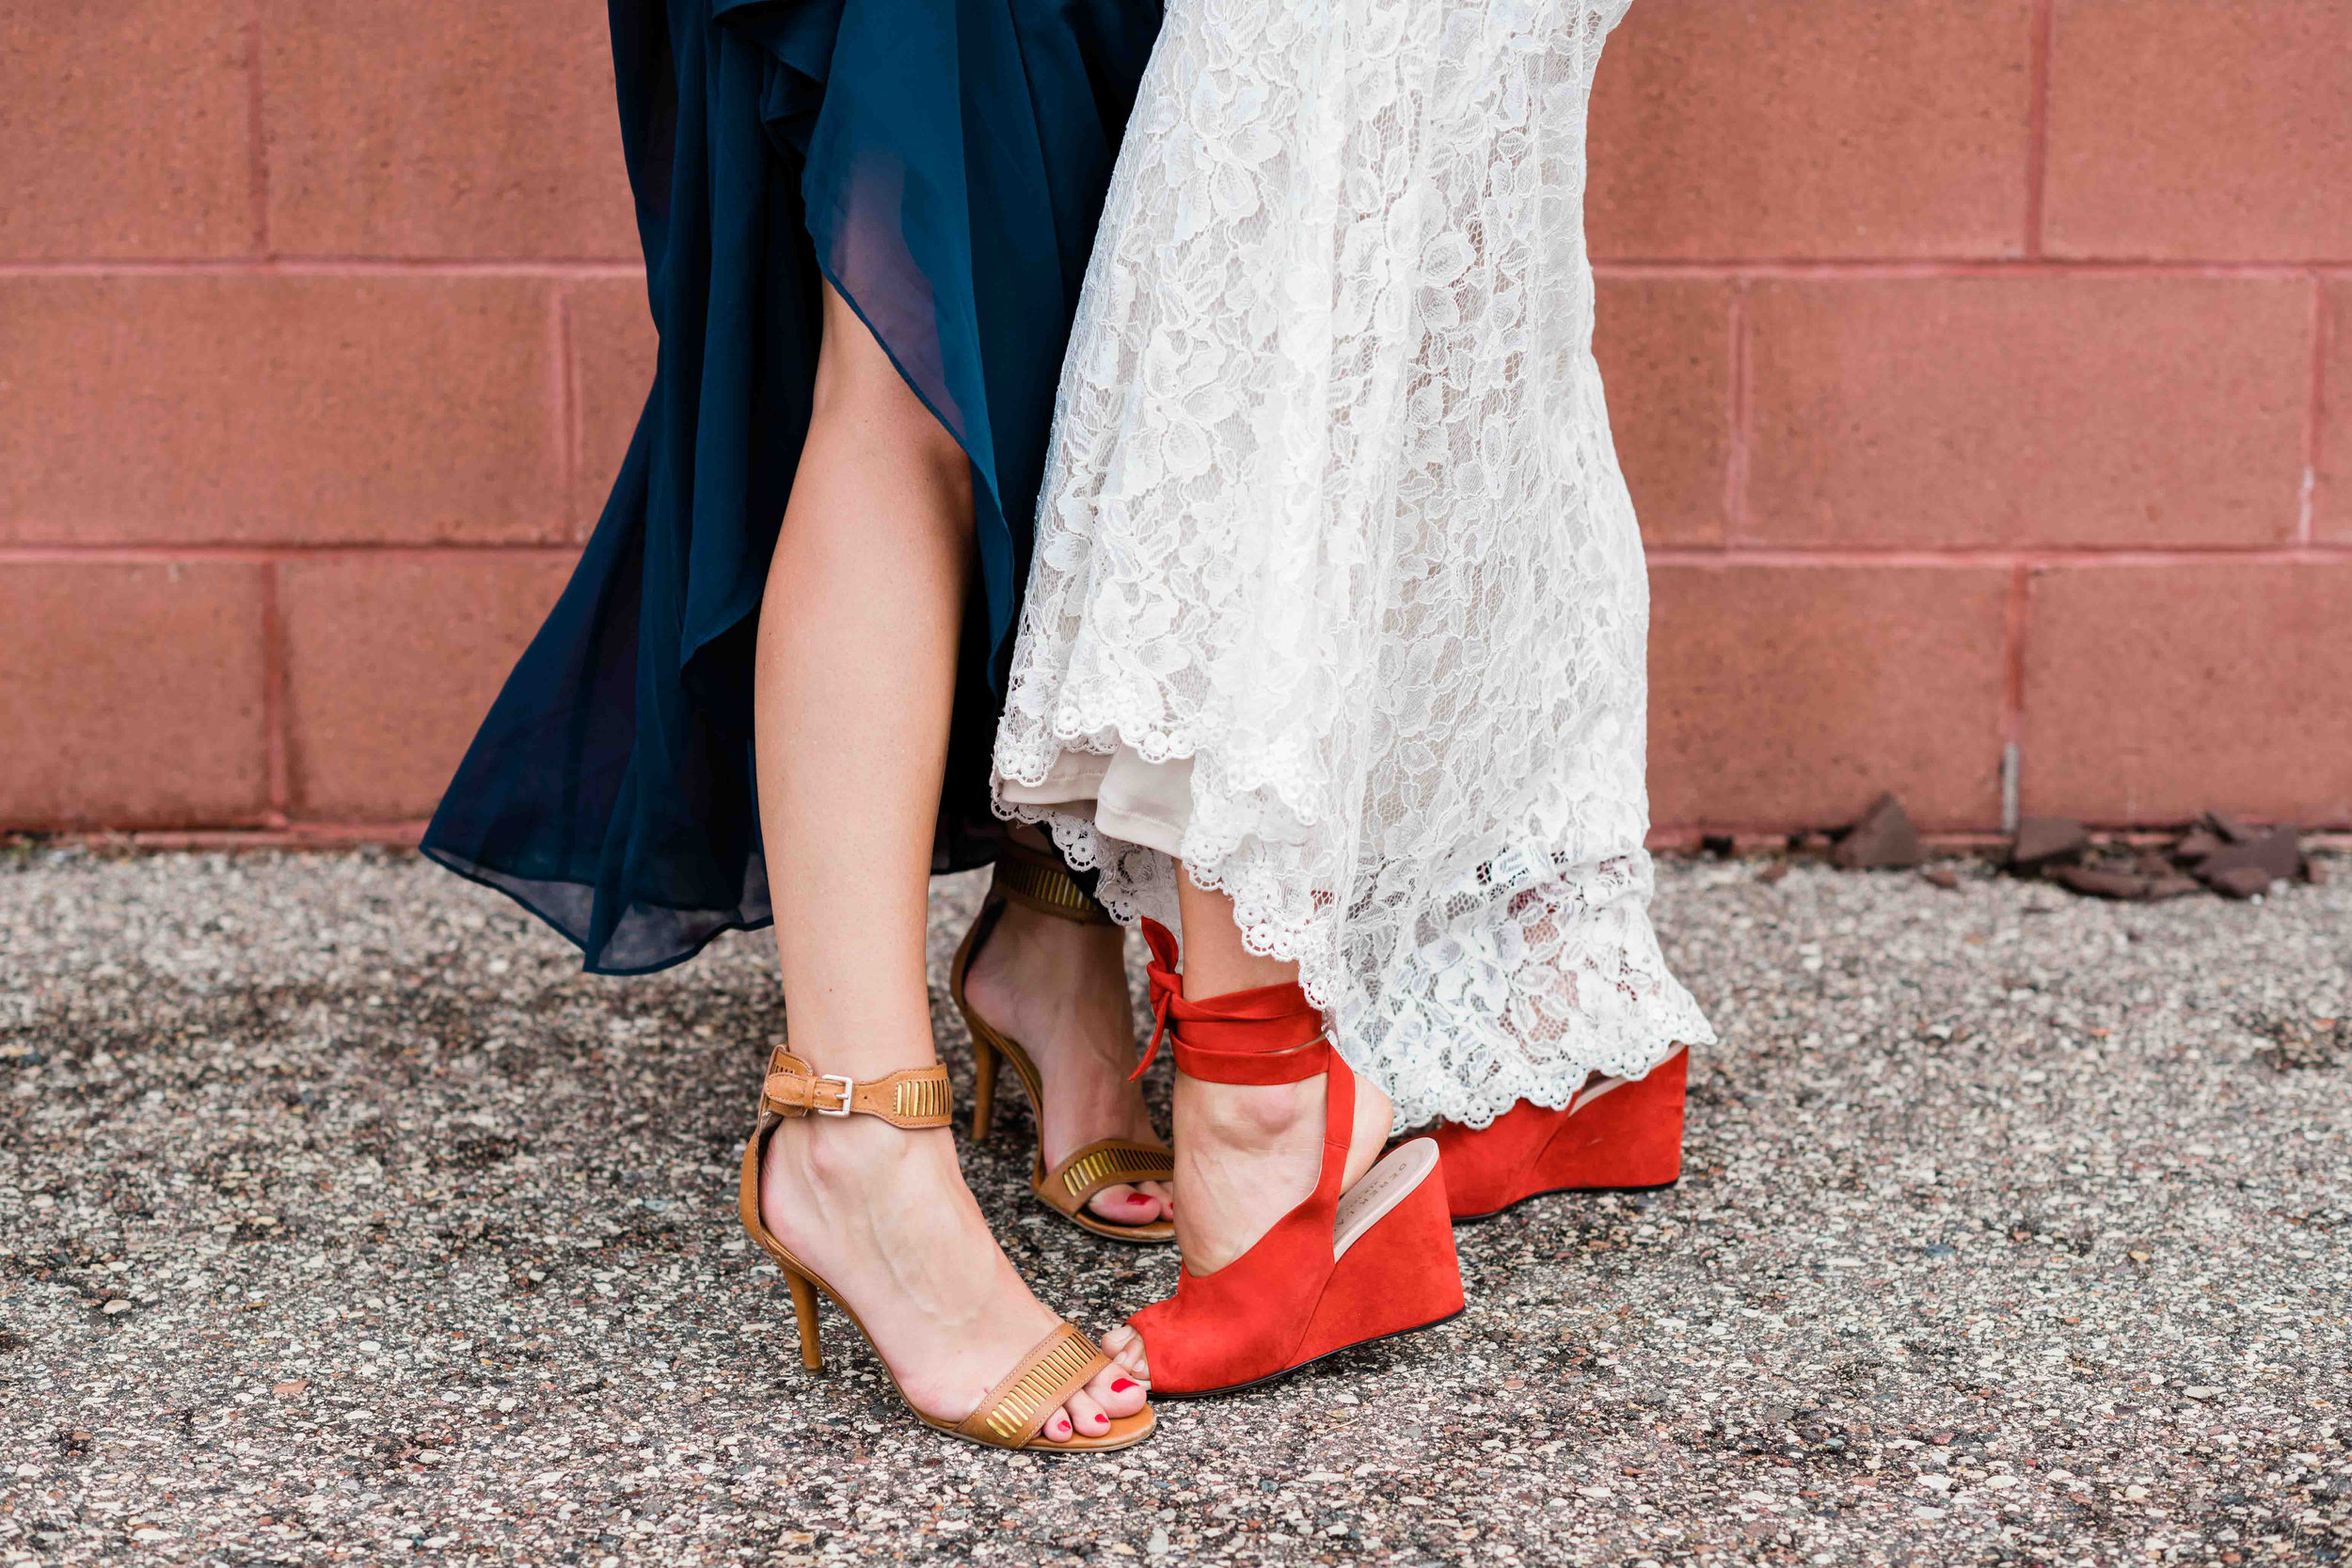 Bride and bridesmaid show off their shoes